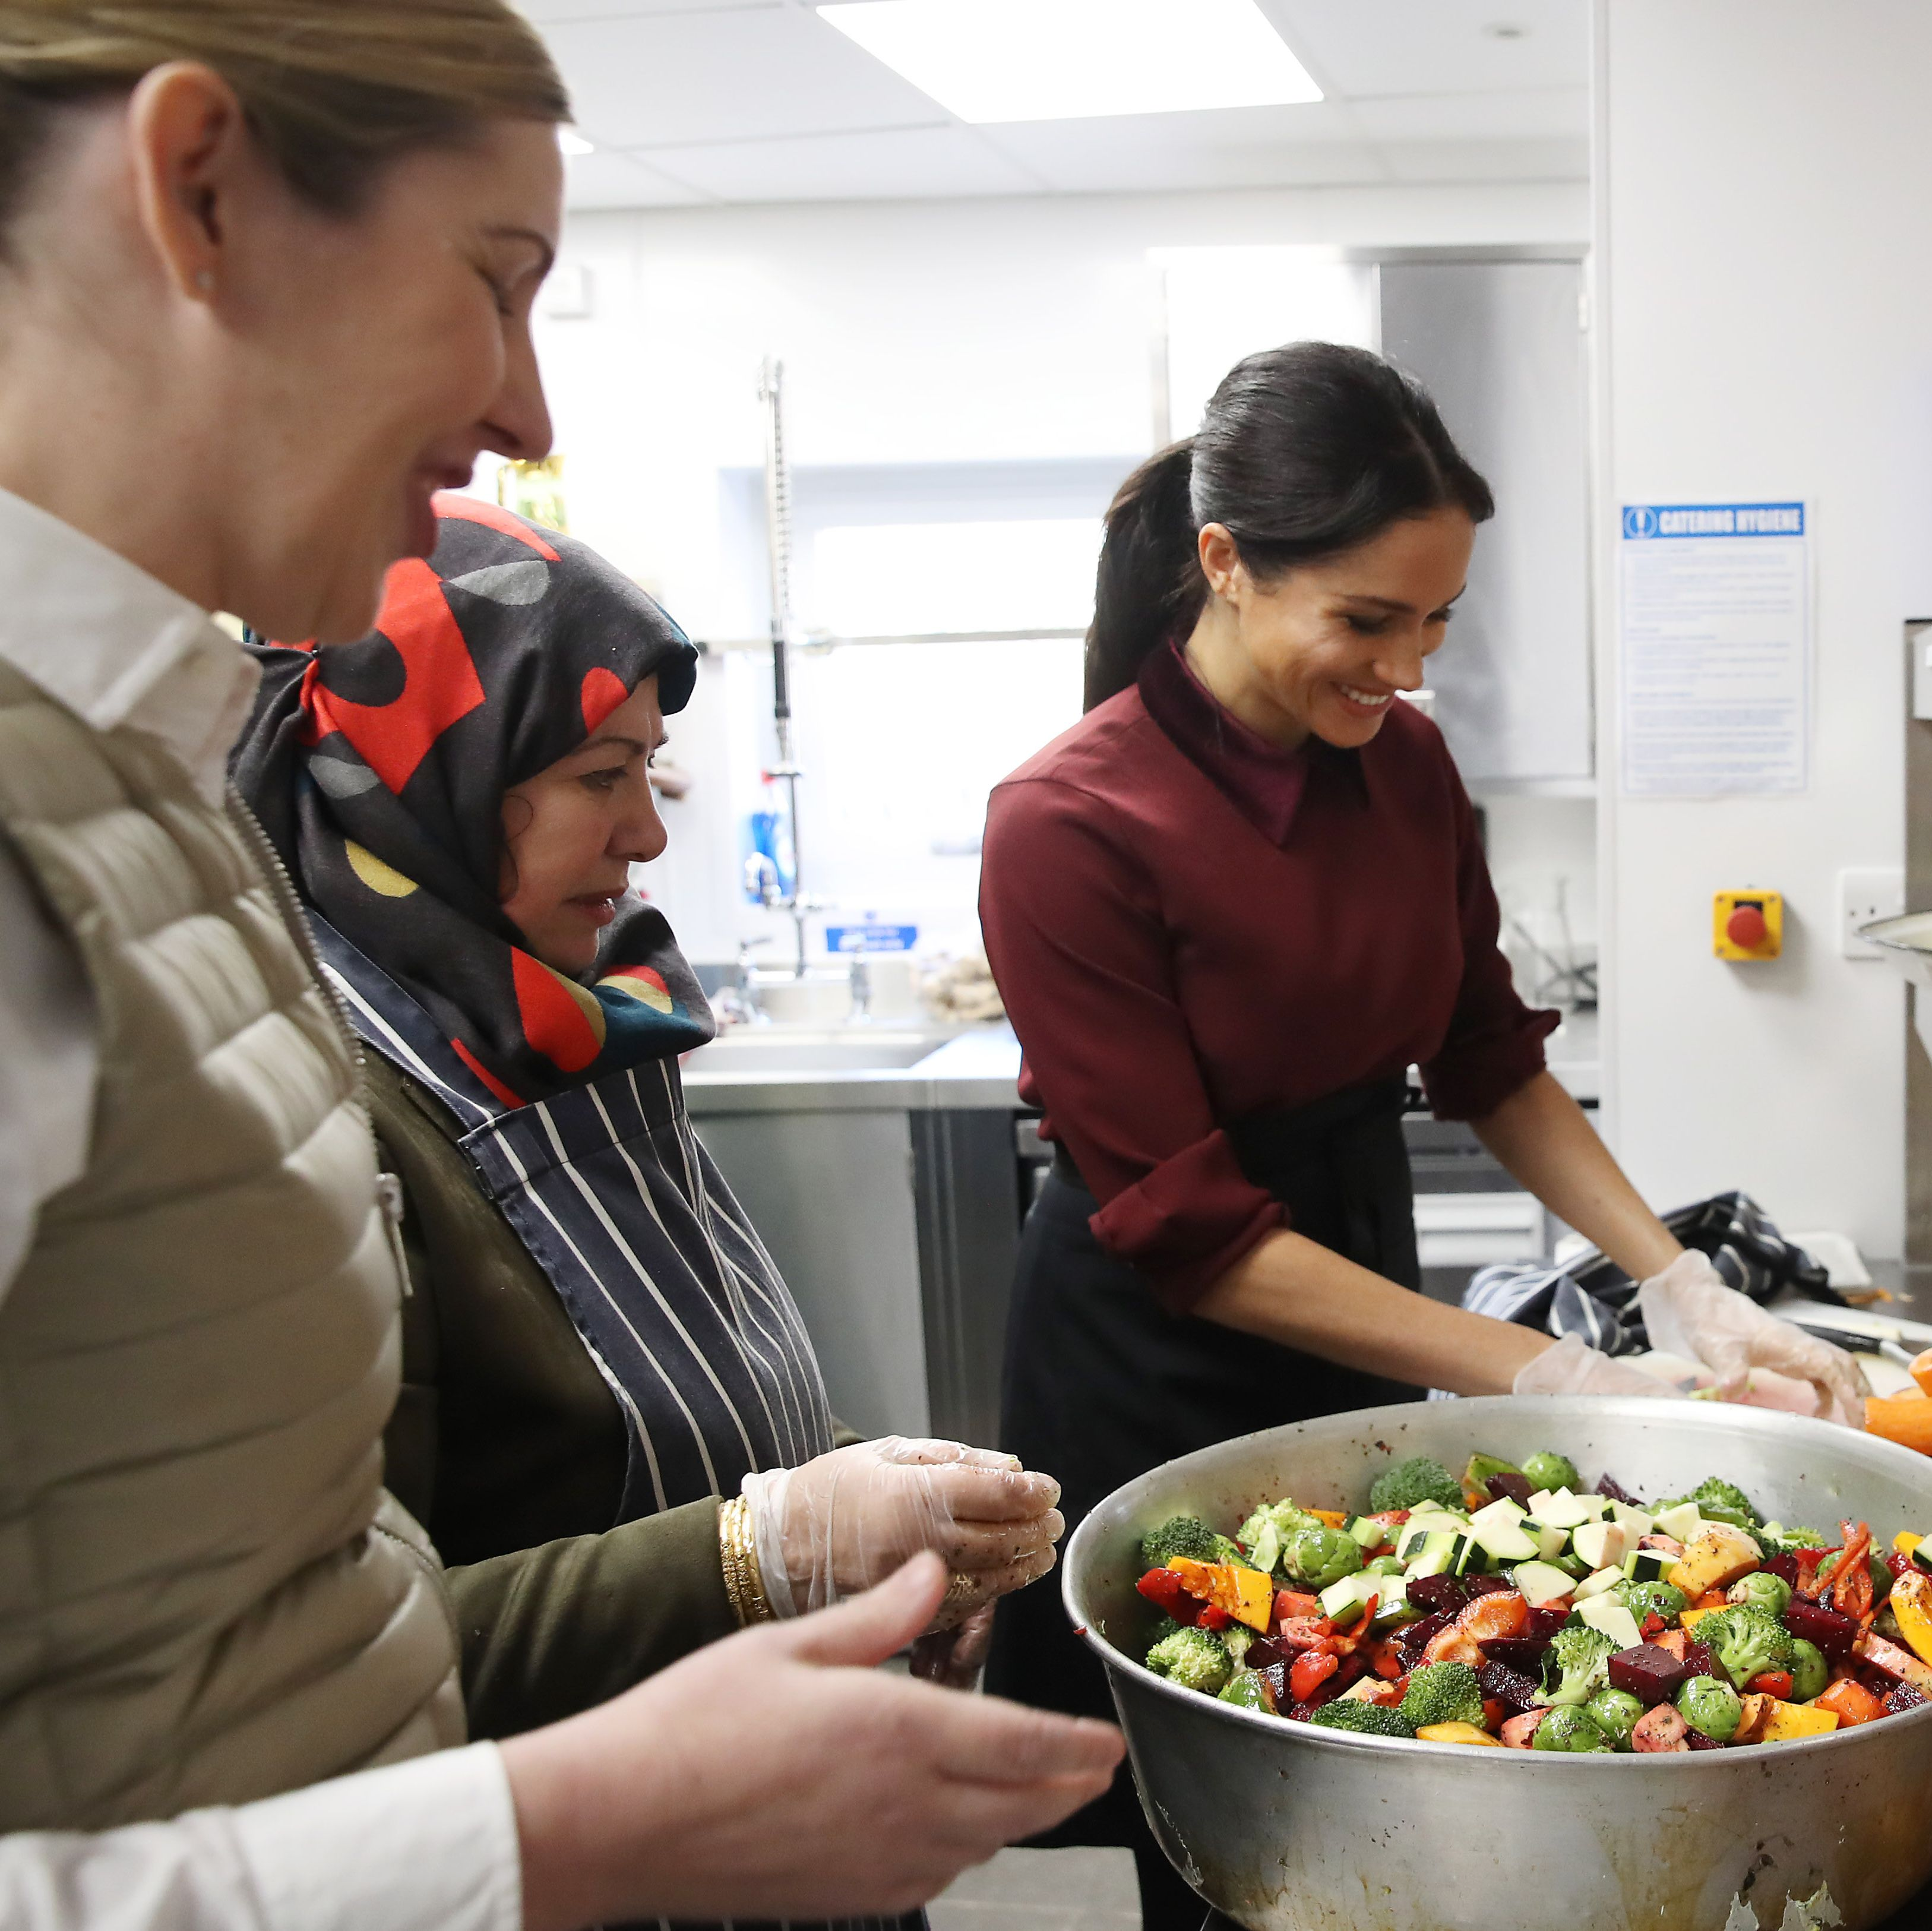 Meghan, Duchess of Sussex and chef Clare Smyth visit the Hubb Community Kitchen in London, England on November 21, 2018.